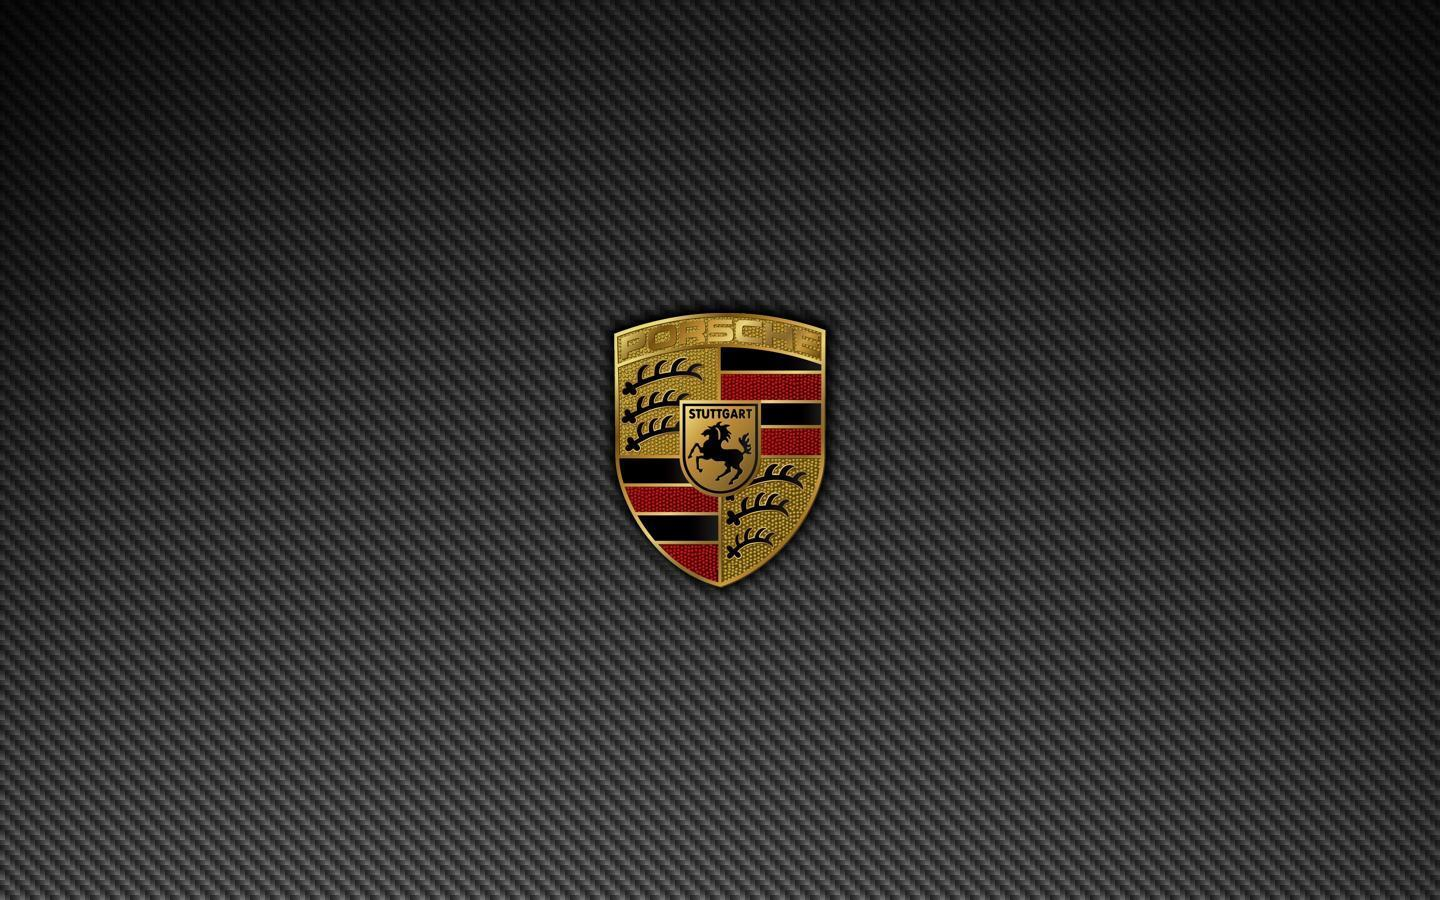 Porsche Images PORSCHE LOGO HD Wallpaper And Background Photos